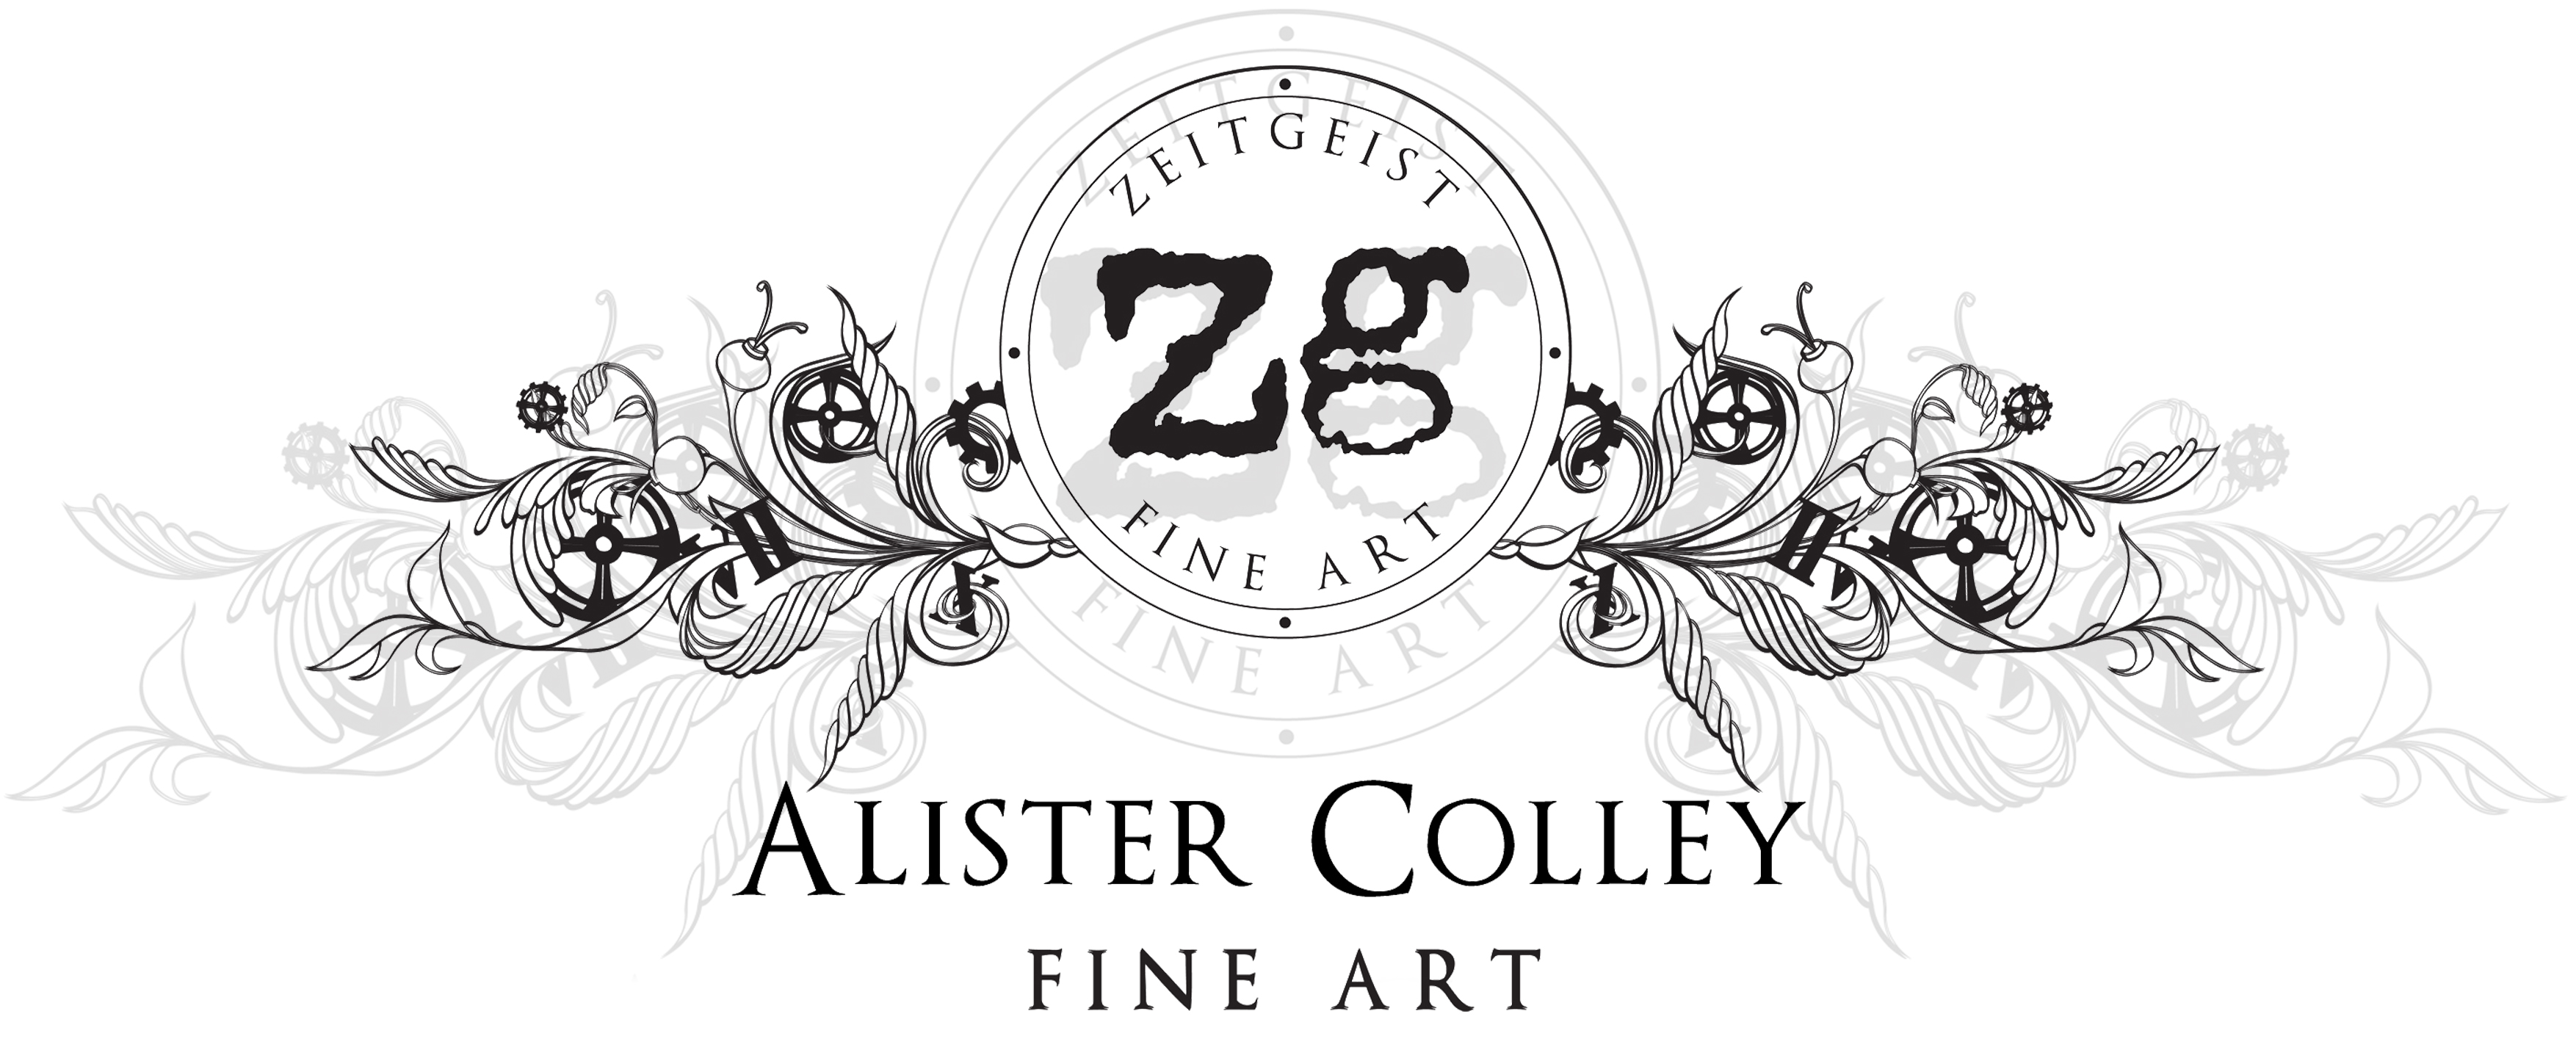 Alister Colley Fine Art